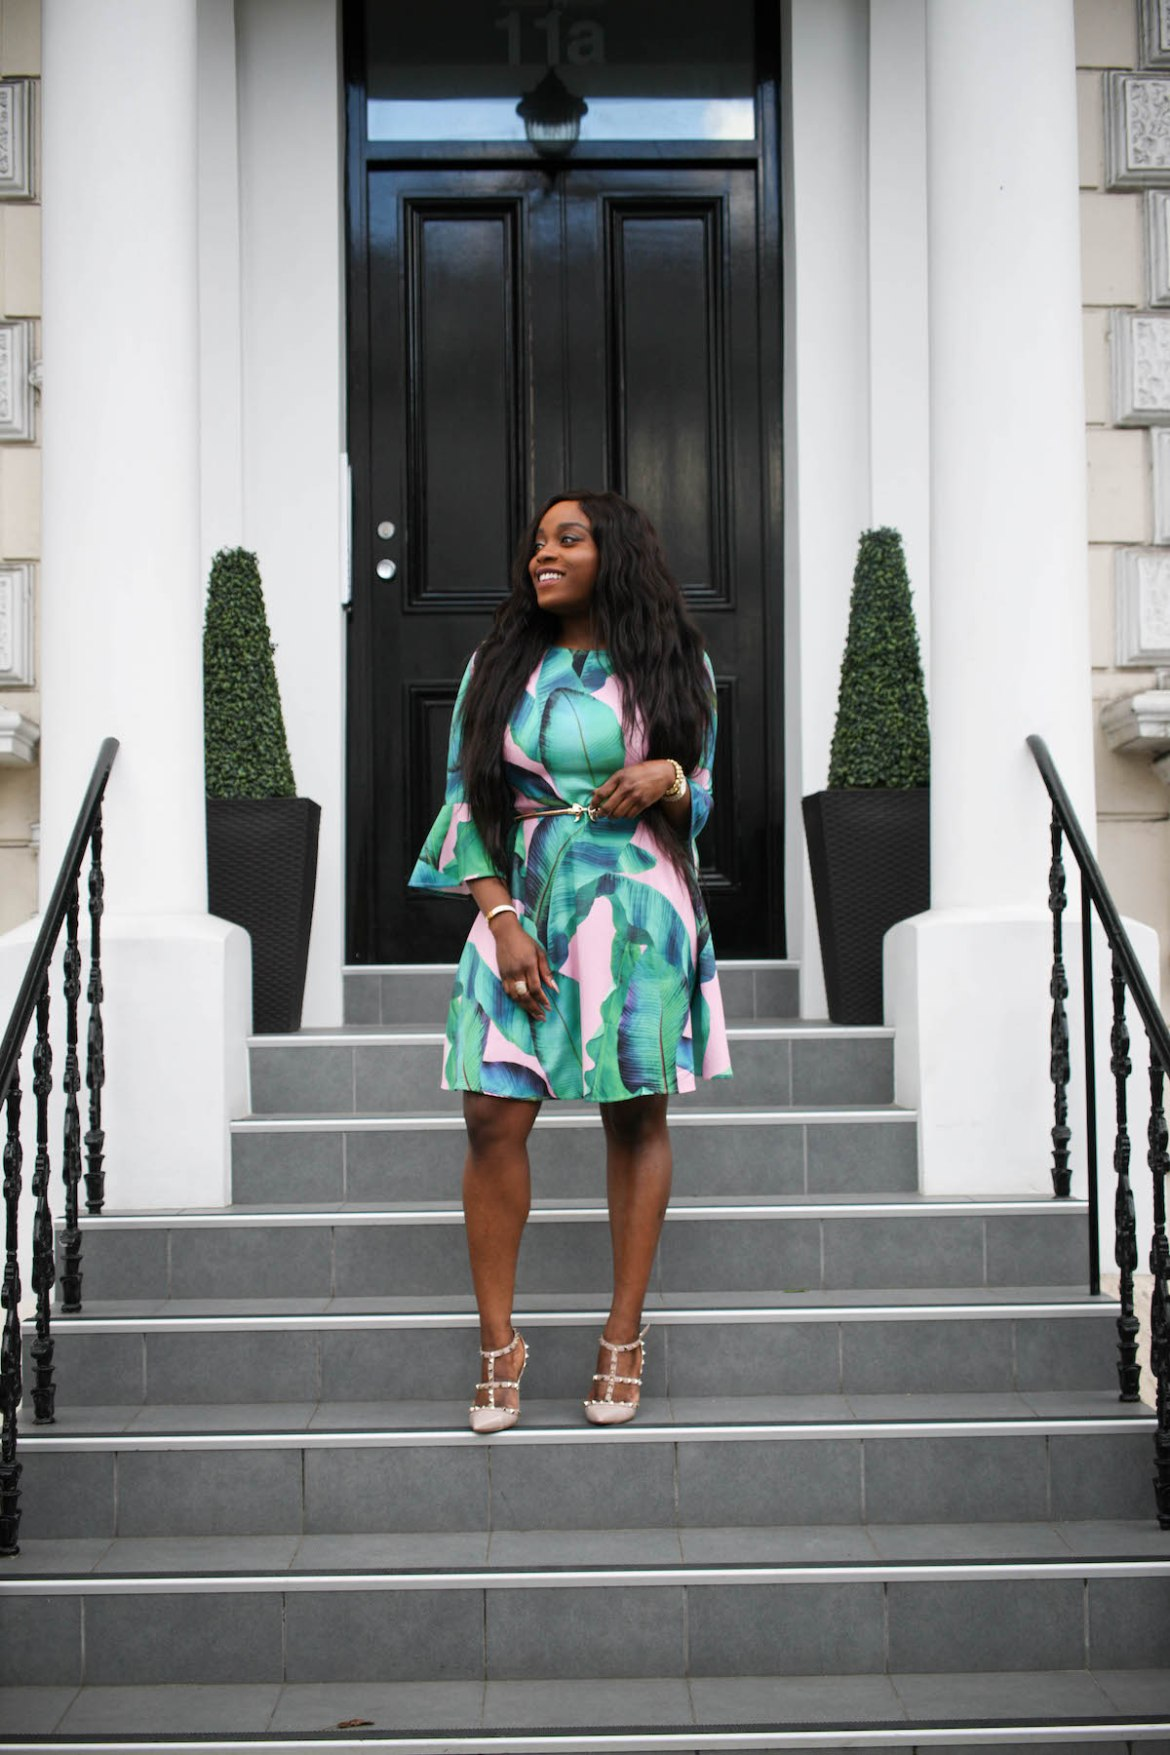 Adaora soludo summer dress and 10 fun facts about me